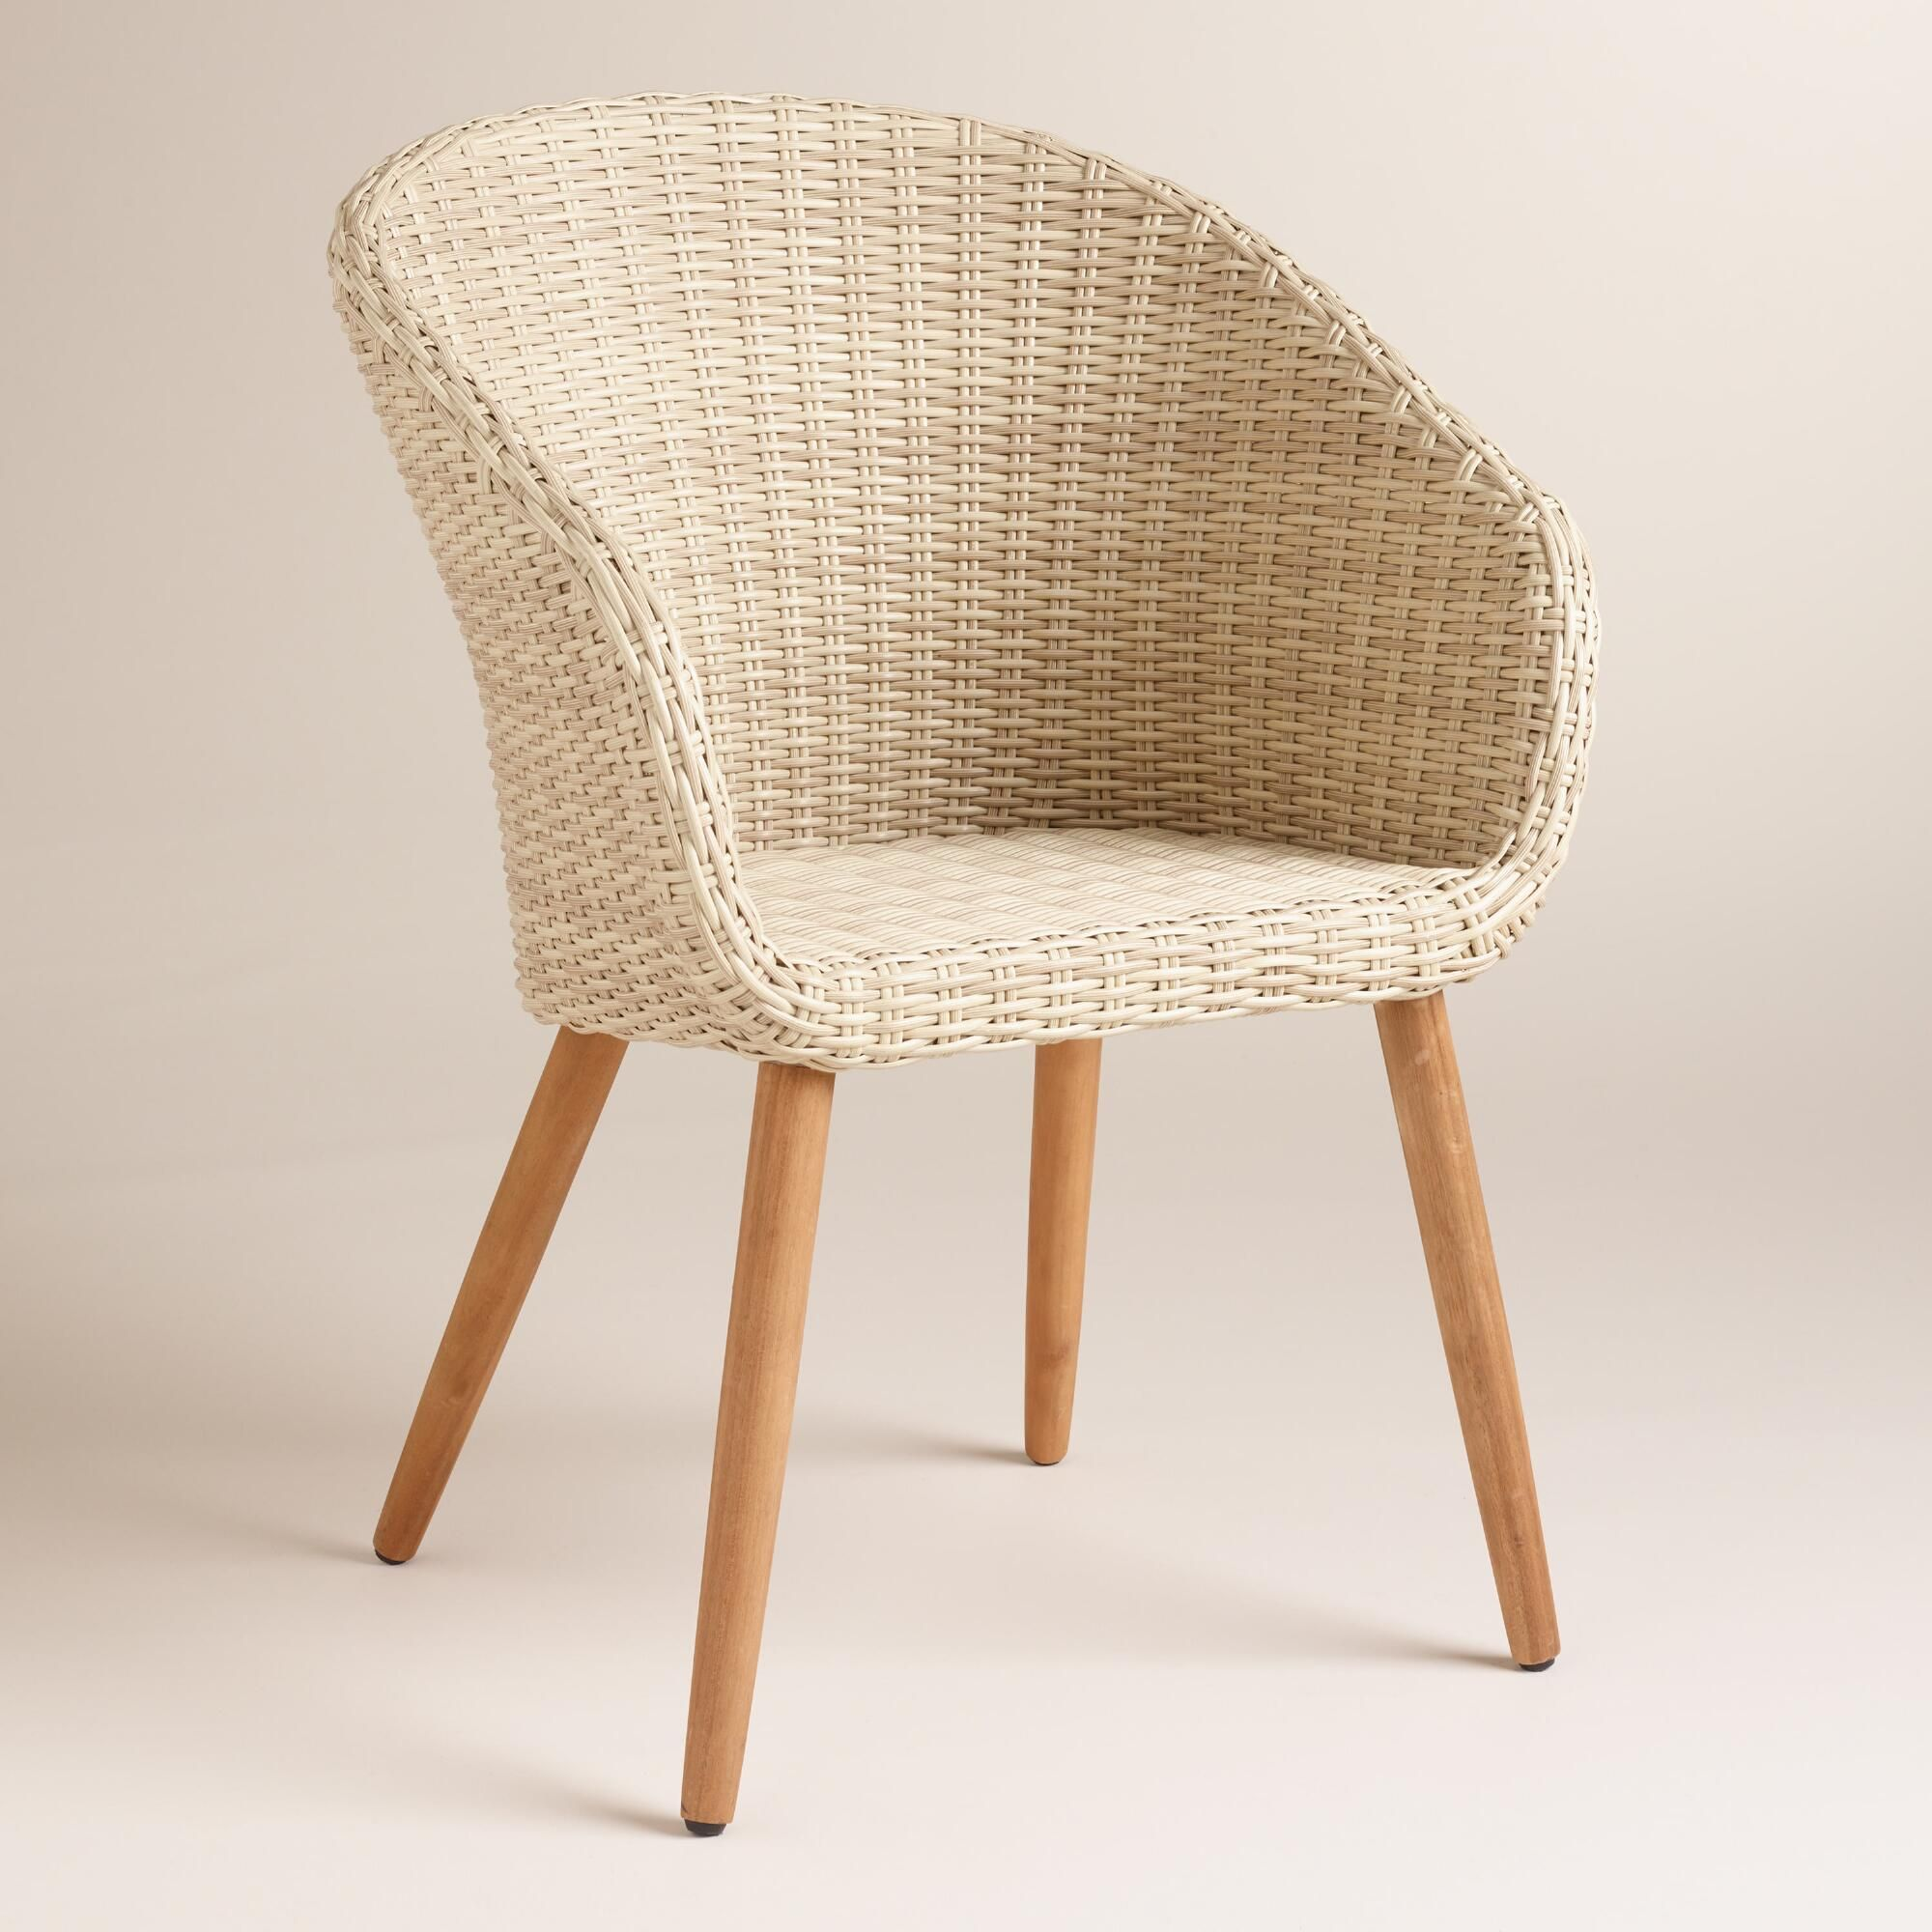 Casual comfortable and distinctly midcentury in style